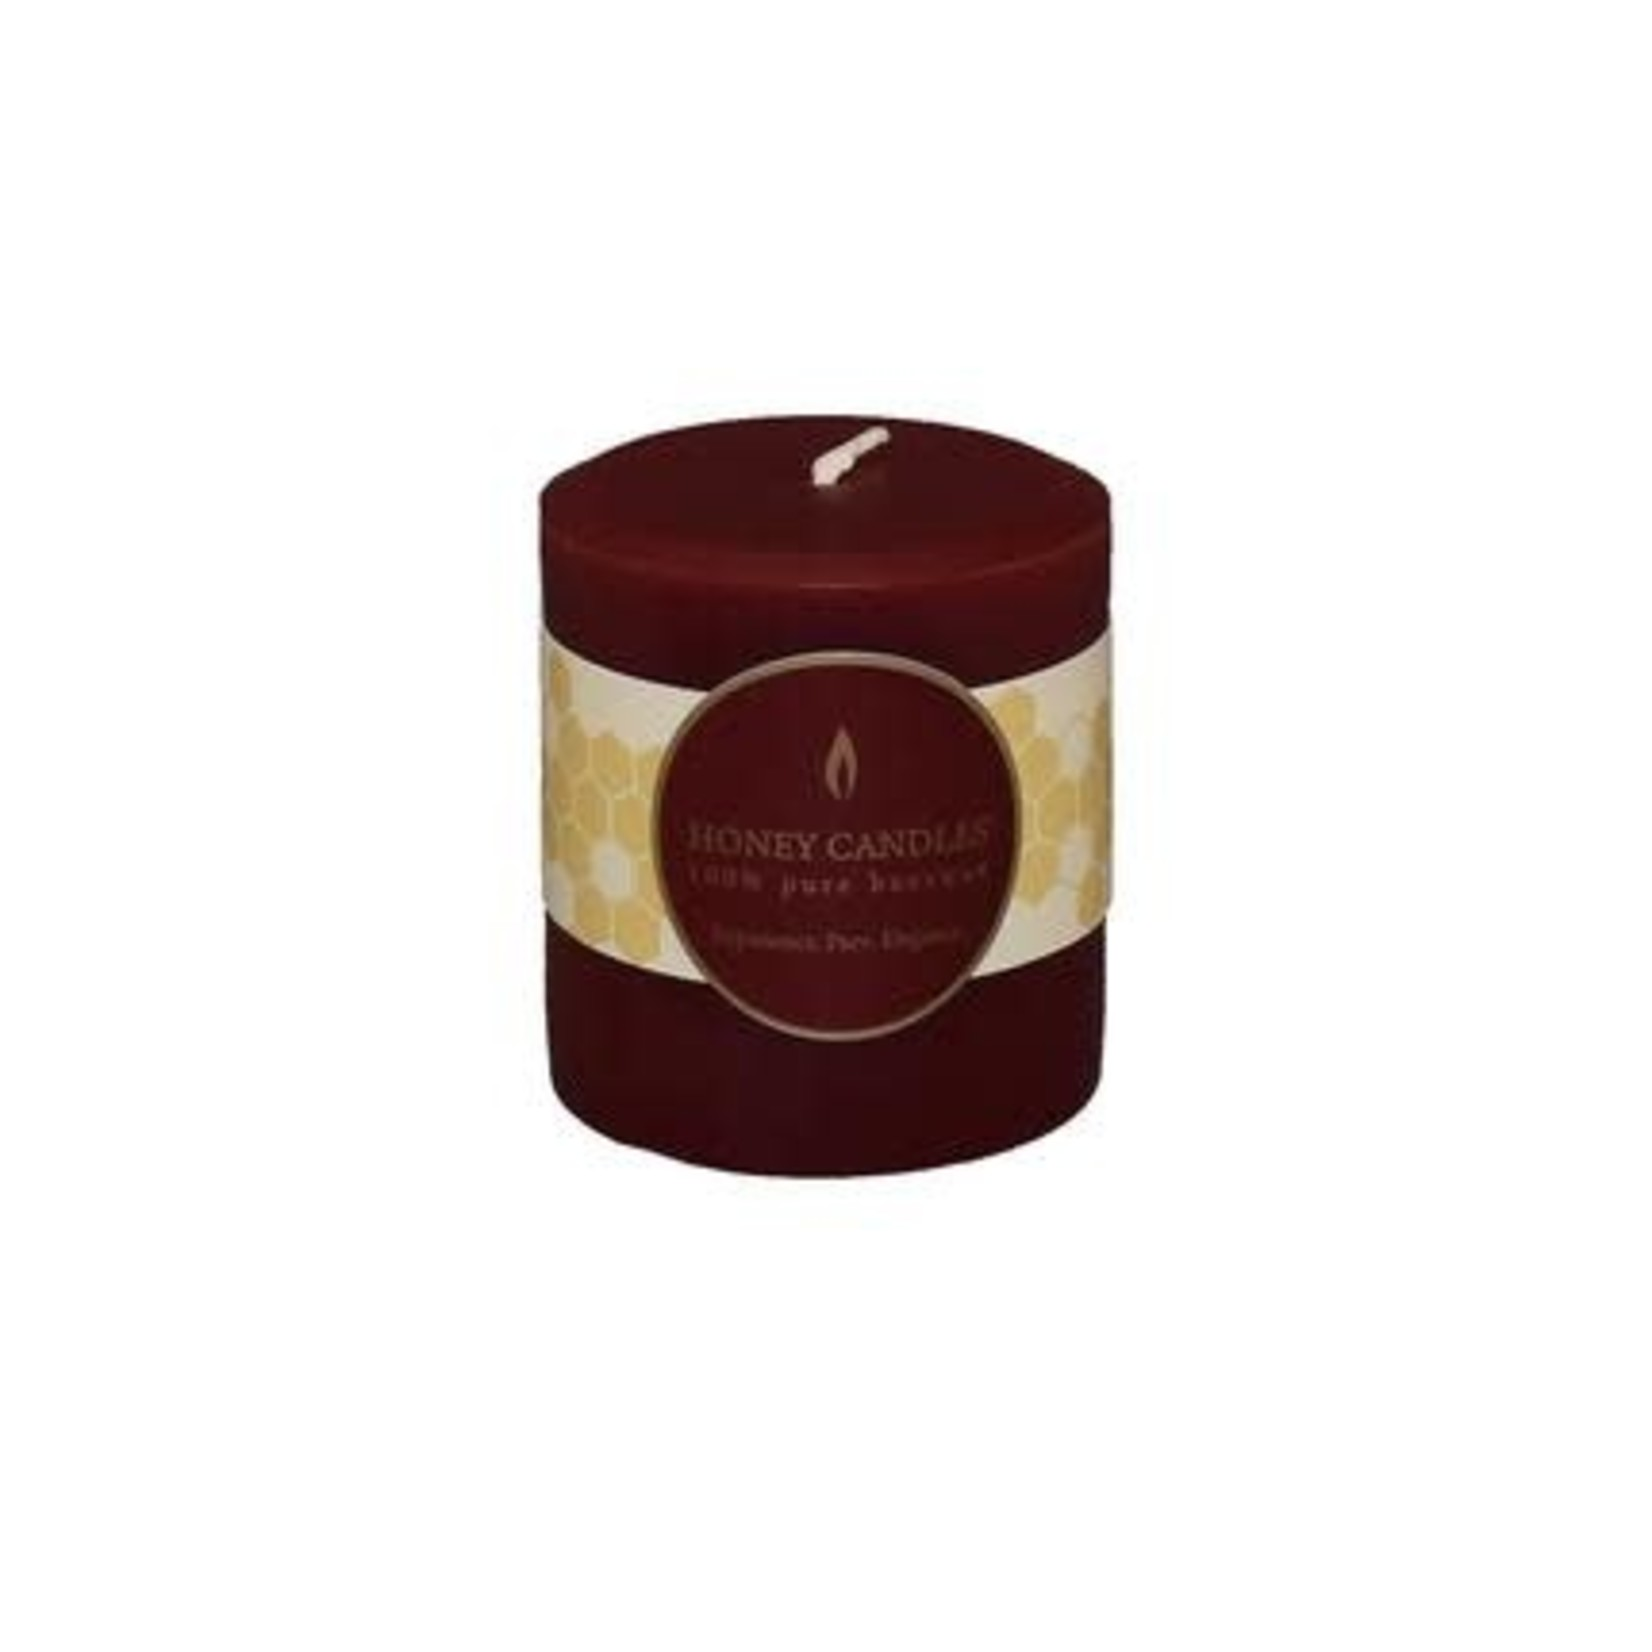 "HONEY CANDLES 3"" ROUND BEESWAX PILLAR - BURGUNDY"